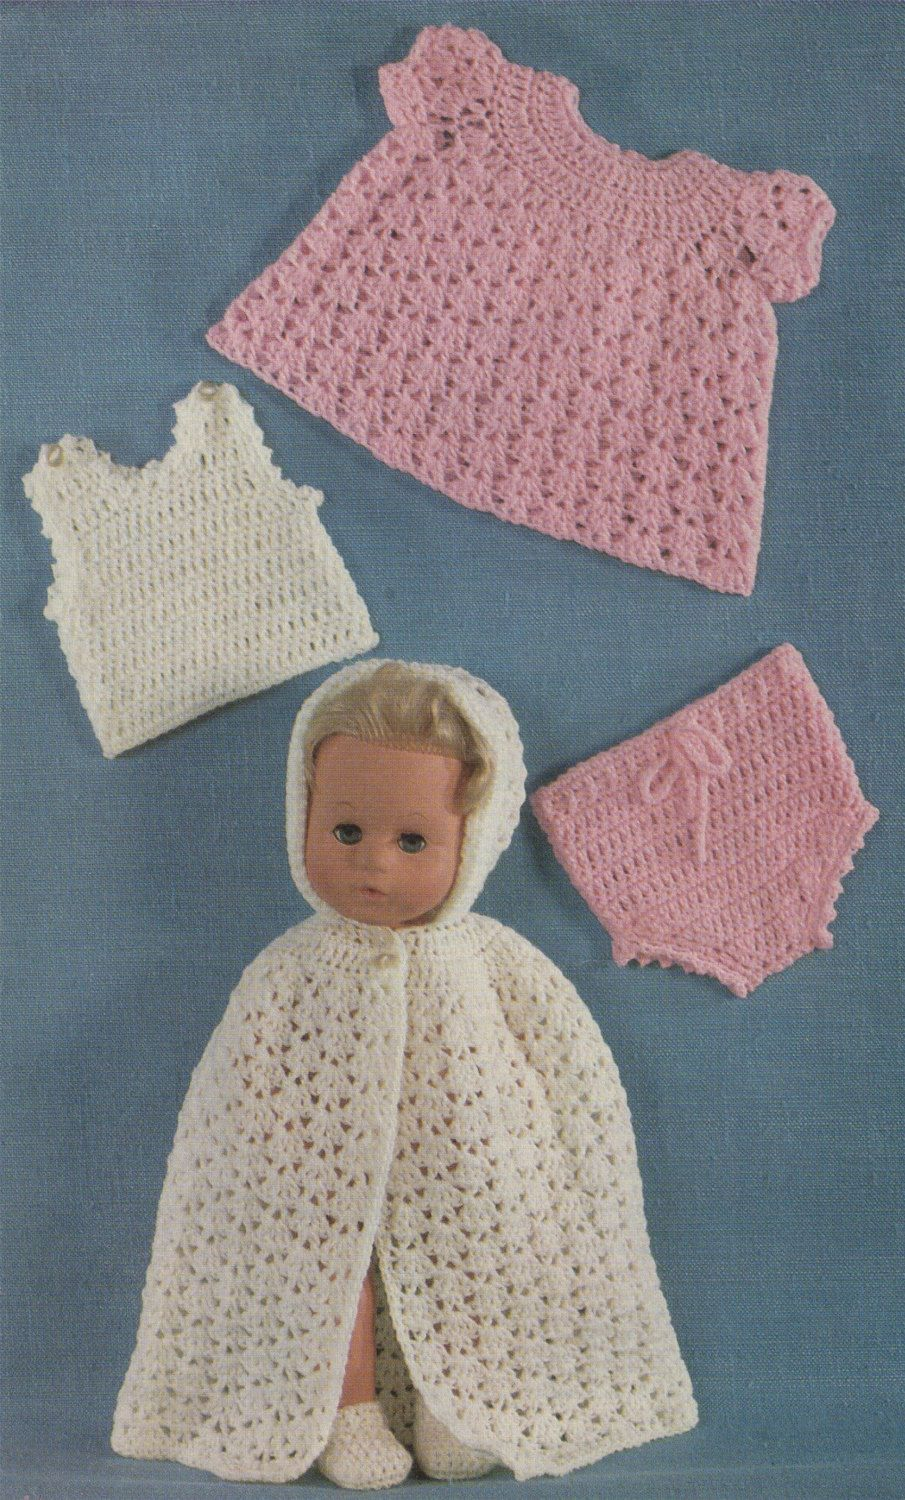 Dolls Clothes Pdf Crochet Pattern 14 Inch High Dolly Chest 11 Inch Tiny Tears Doll Outfit P Vintage Crochet Patterns Crochet Patterns Baby Doll Clothes